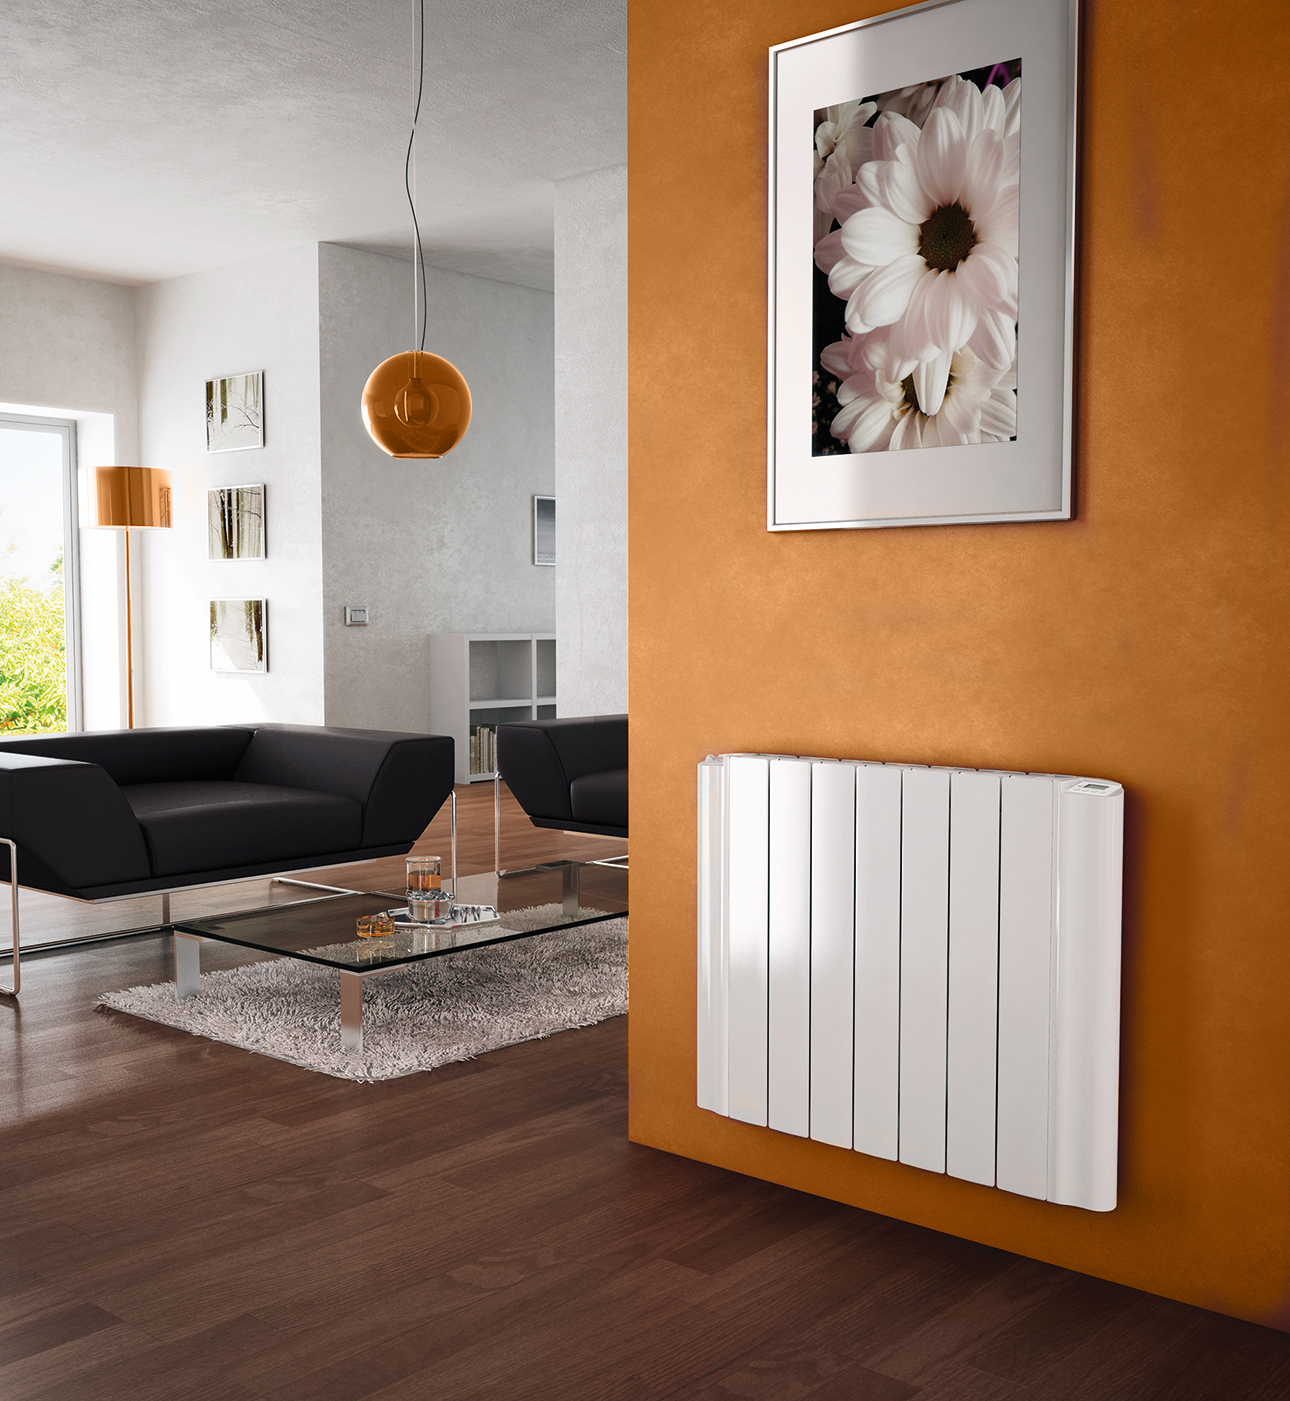 How To Replace Storage Heaters Ecopower Heating